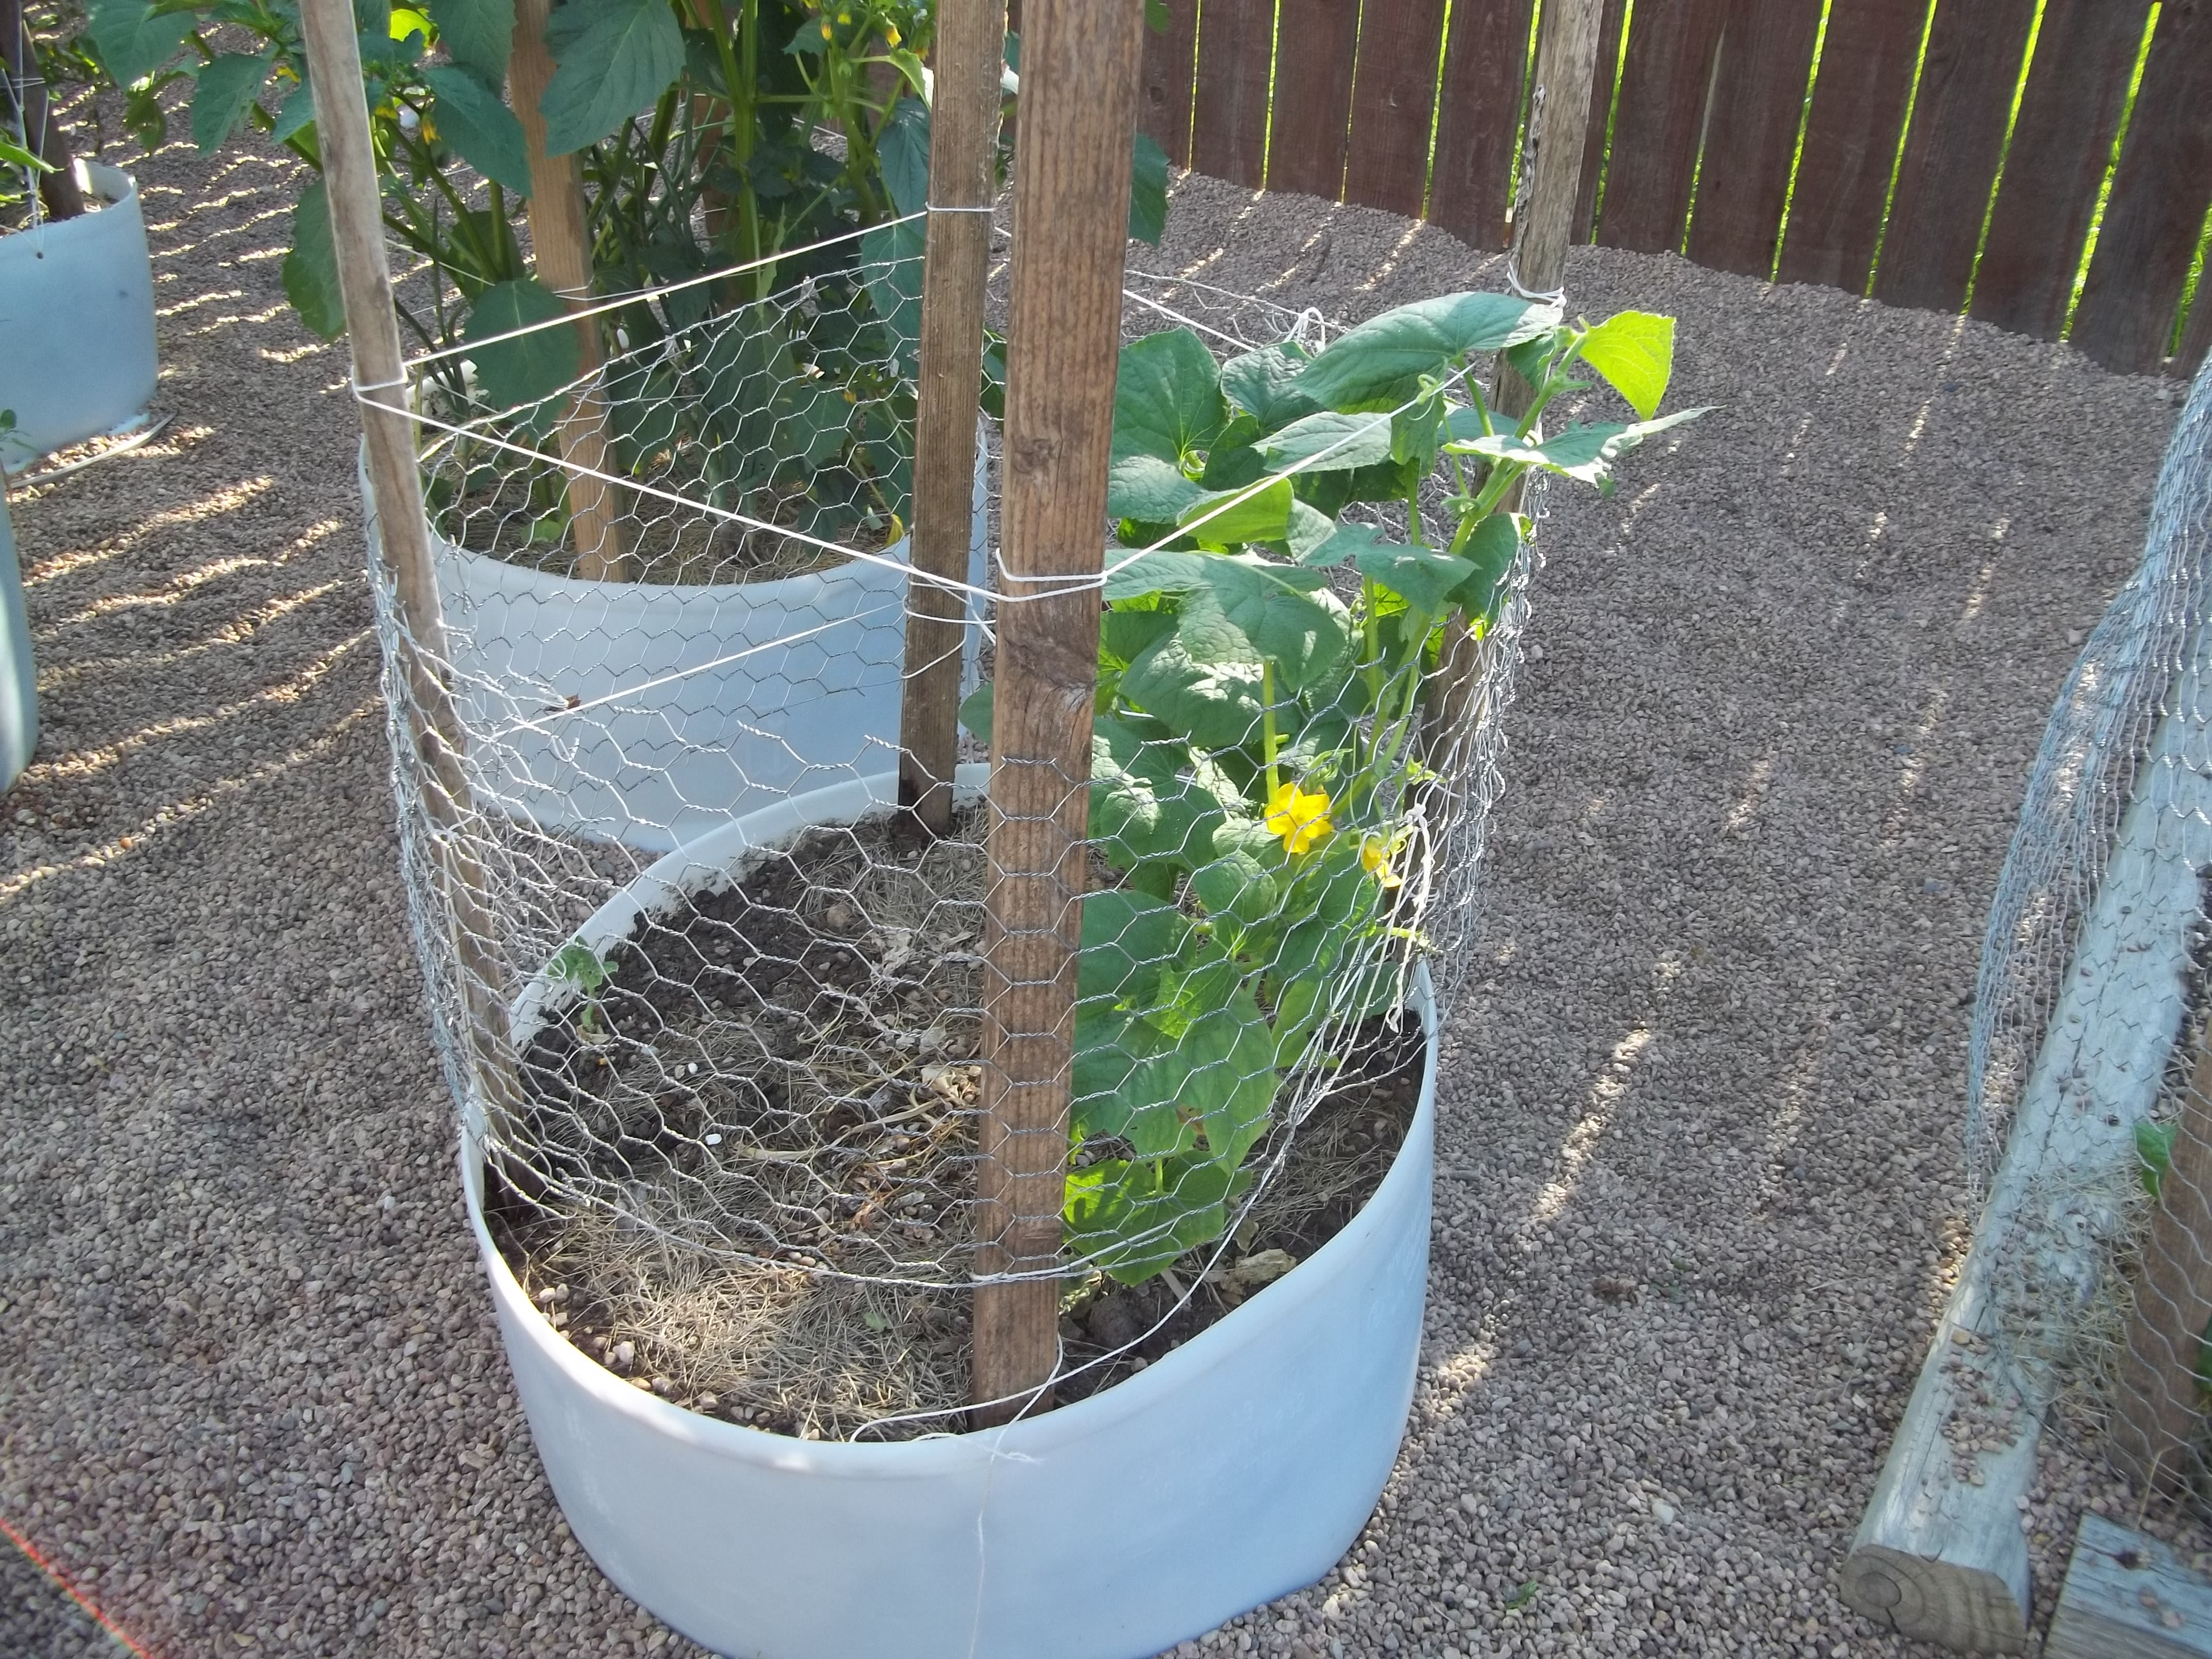 trellis | His and Hers Homesteading